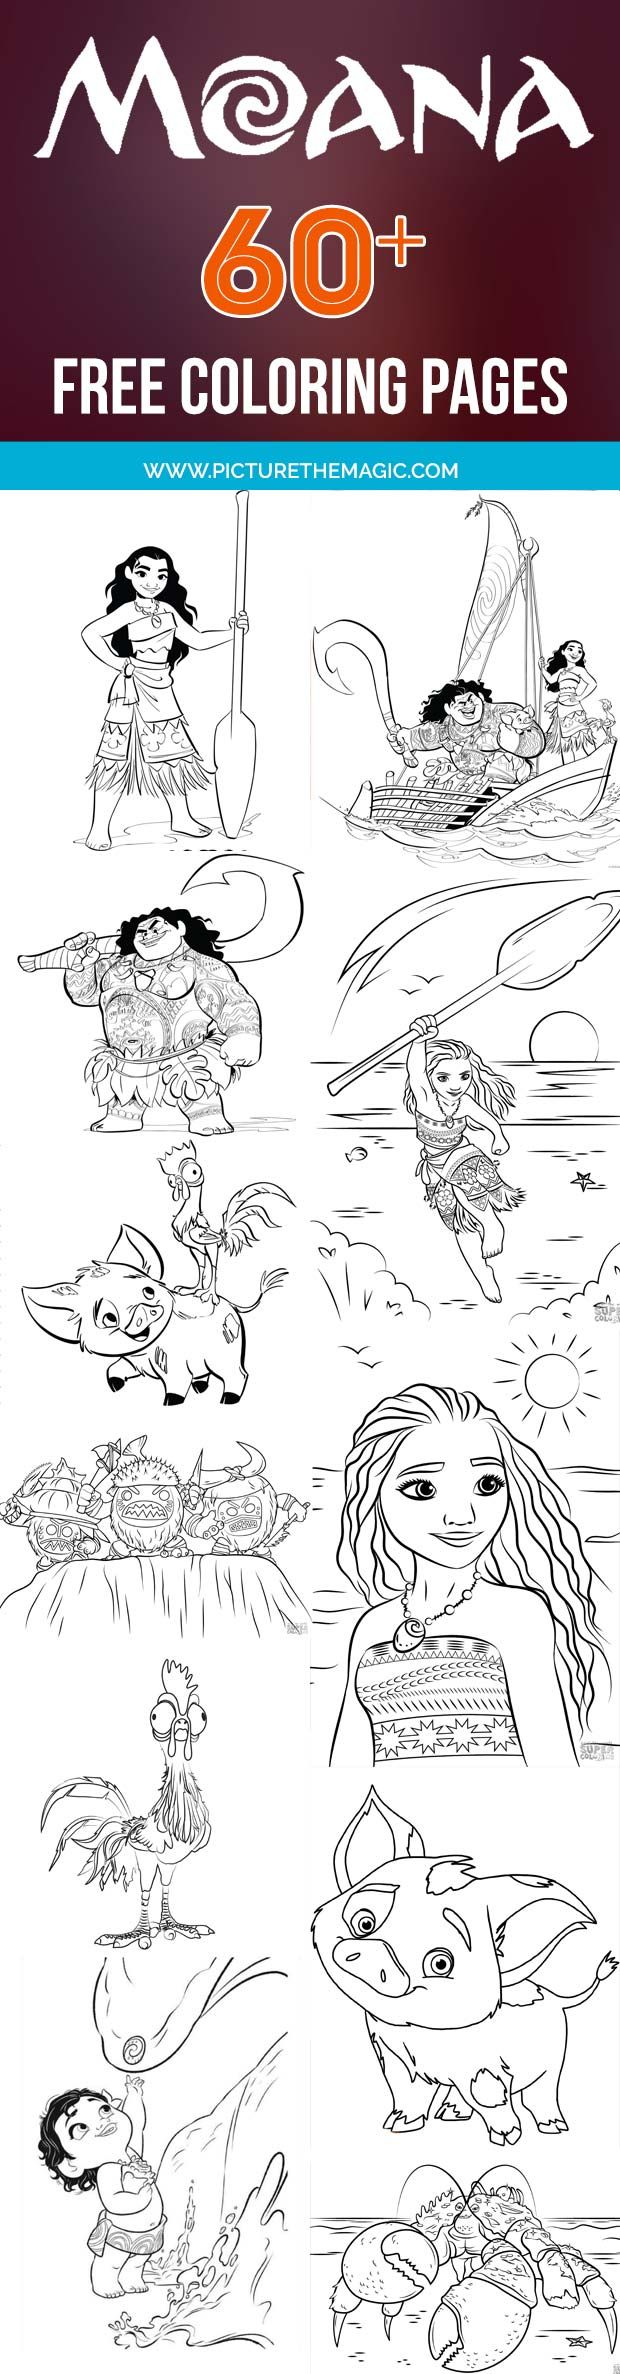 2017 07 31 coloring pages frozen coloring pages frozen 71 comments feed - 59 Moana Coloring Pages August 2017 Edition